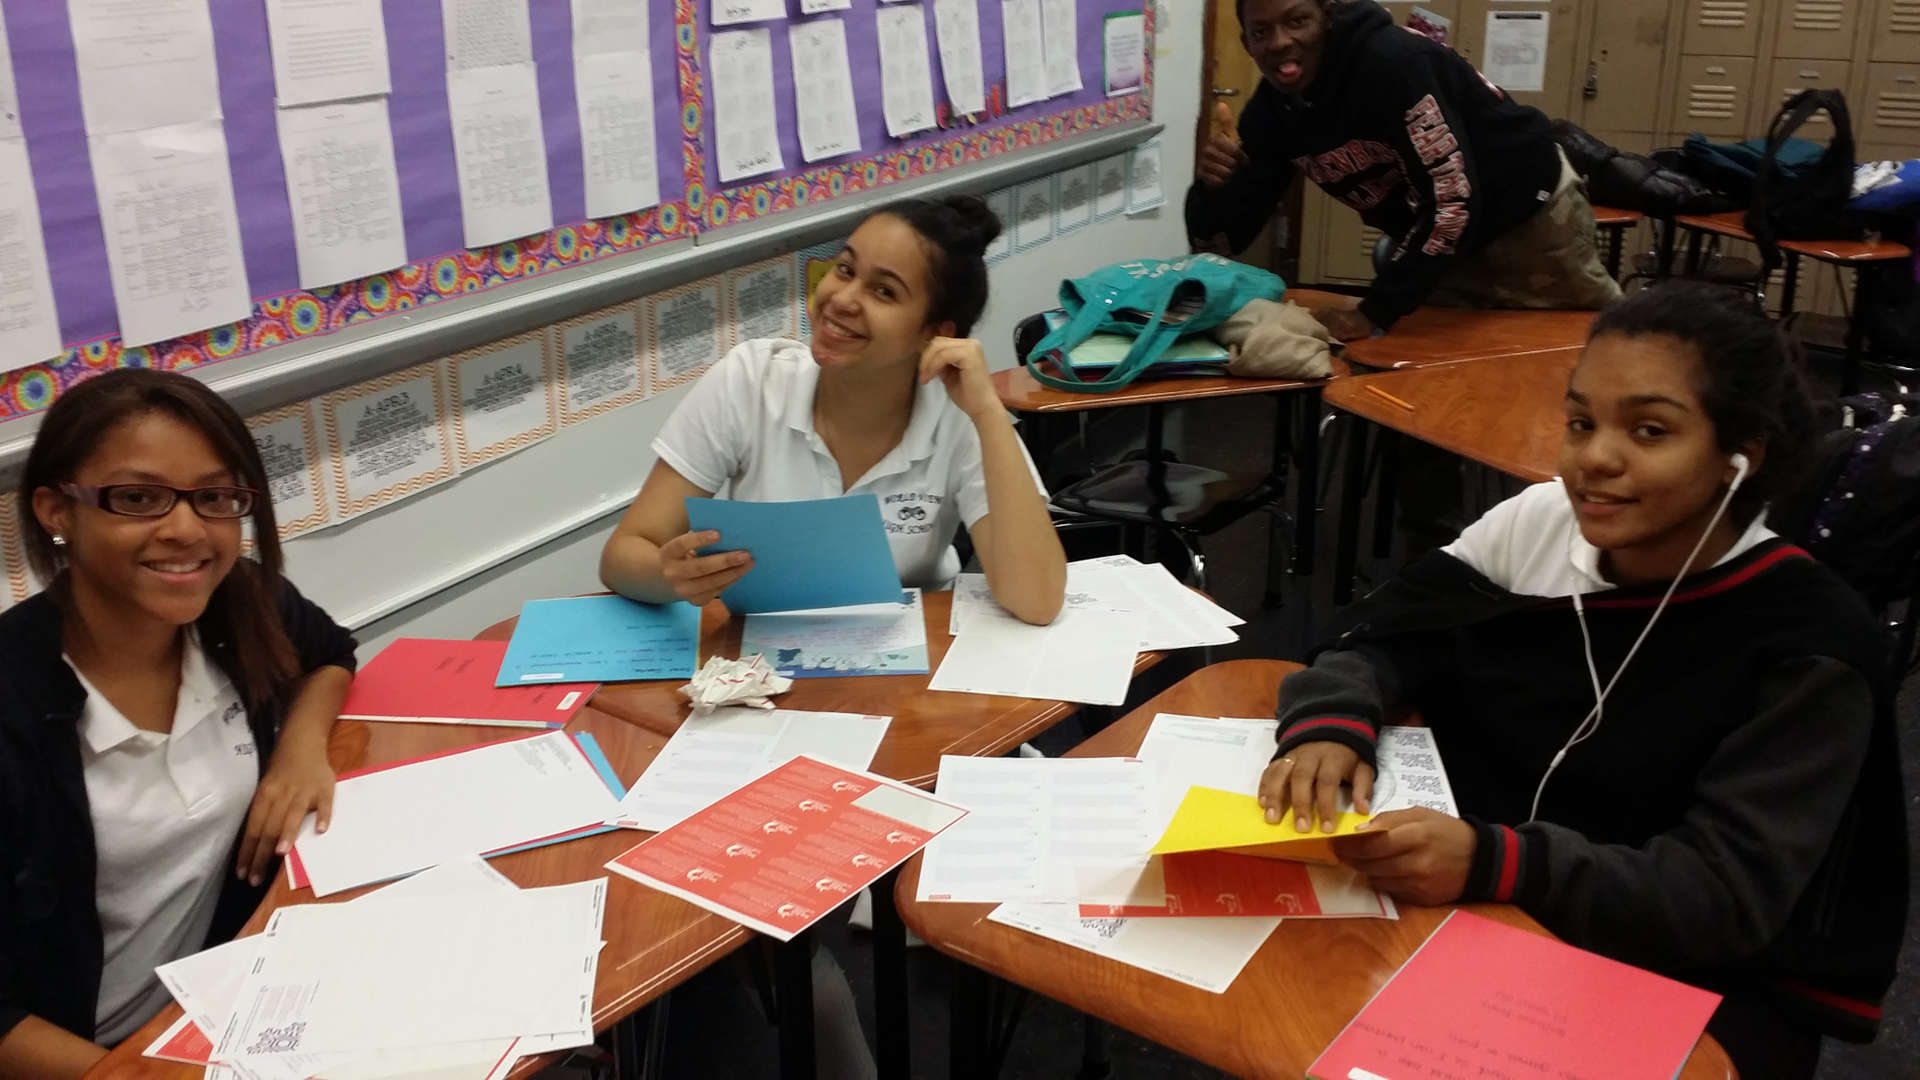 Students at work in class